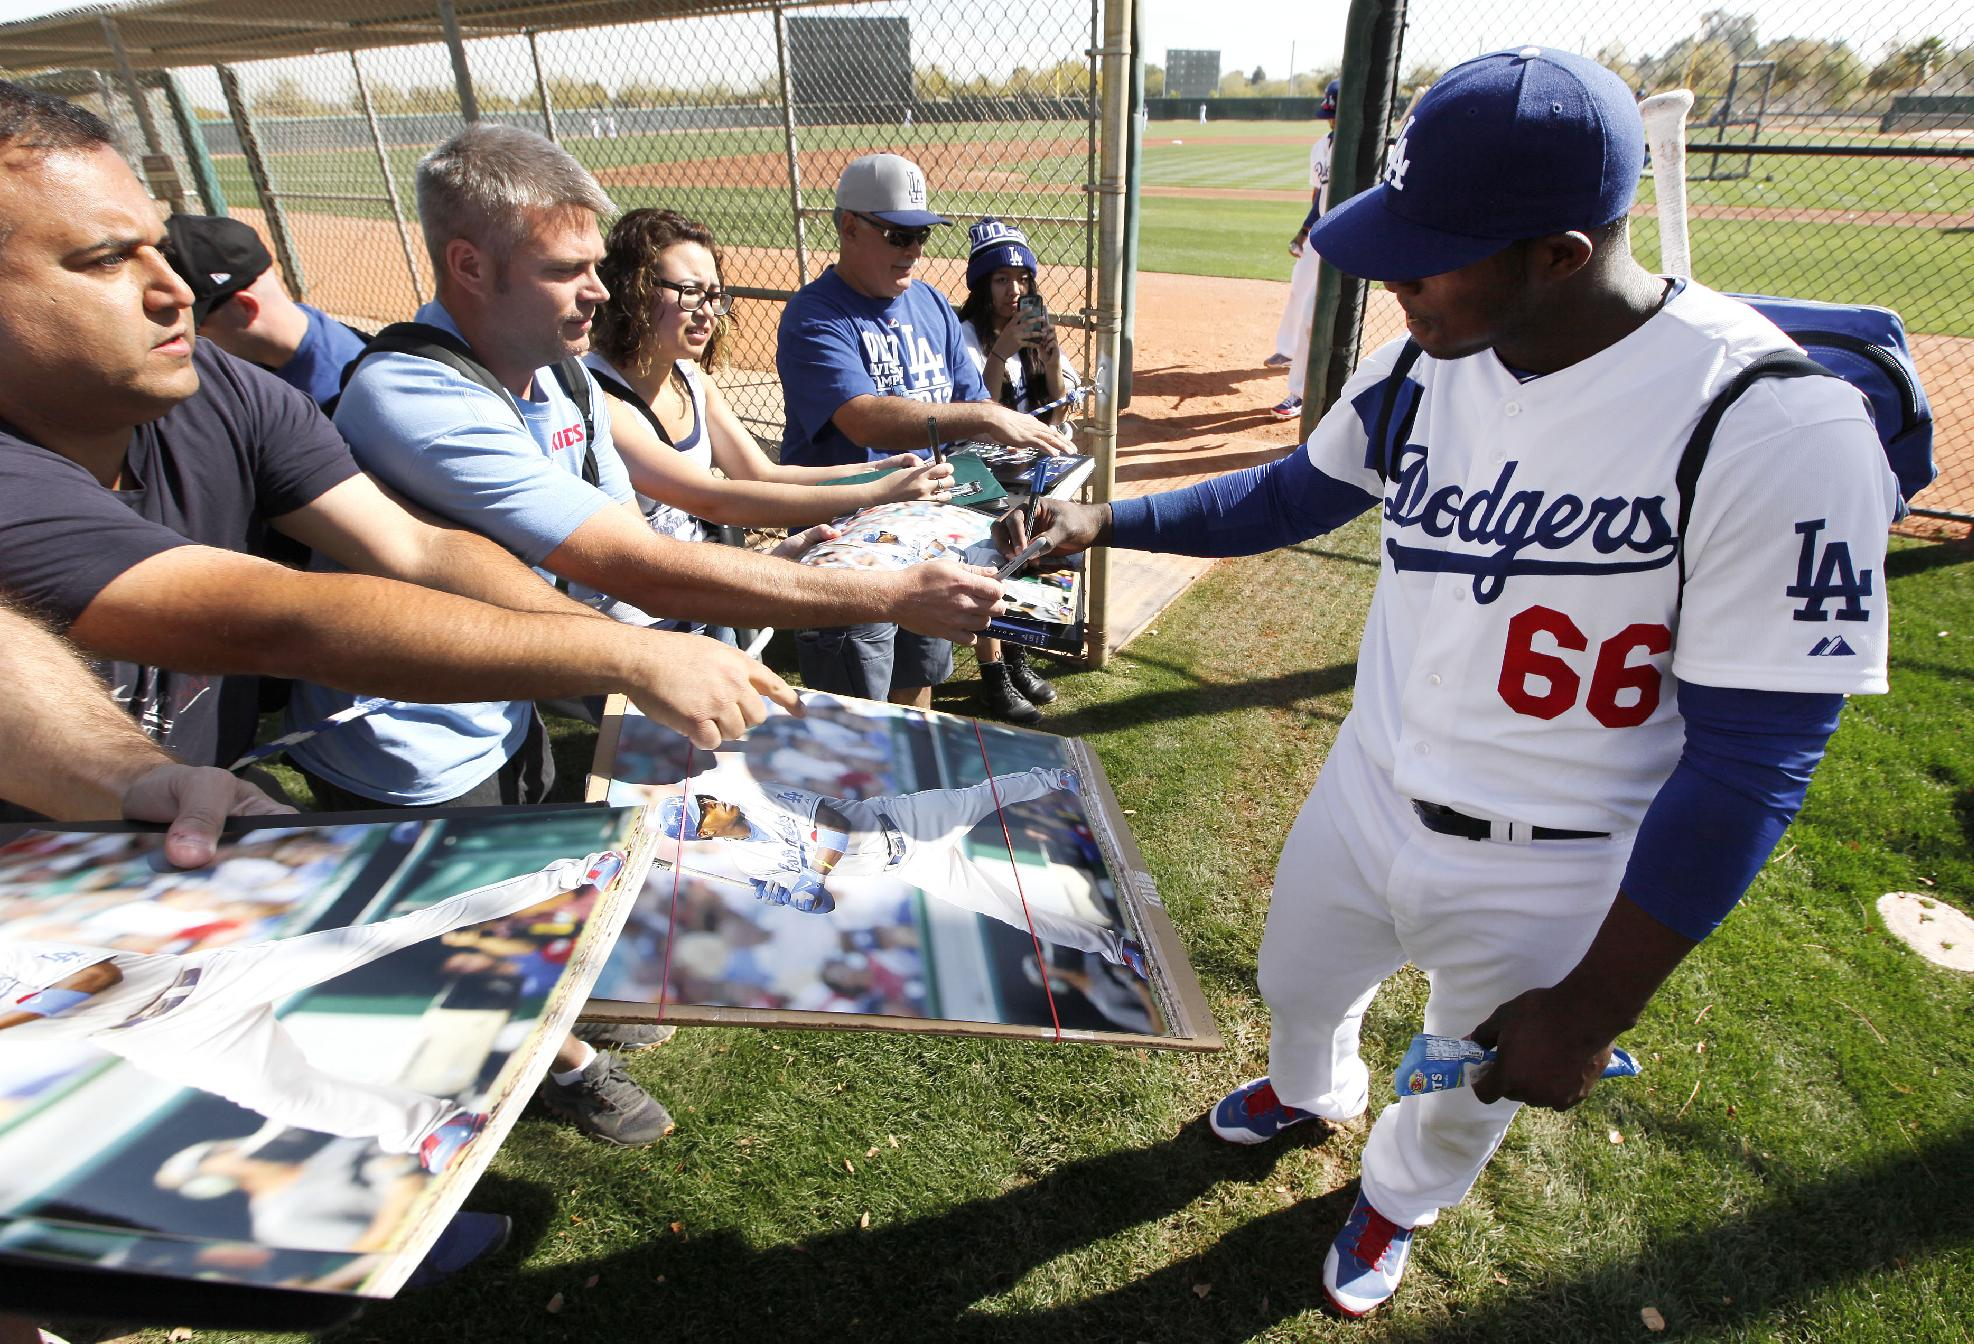 Yasiel Puig says he'll slow down in 2014, but the Dodgers shoul…